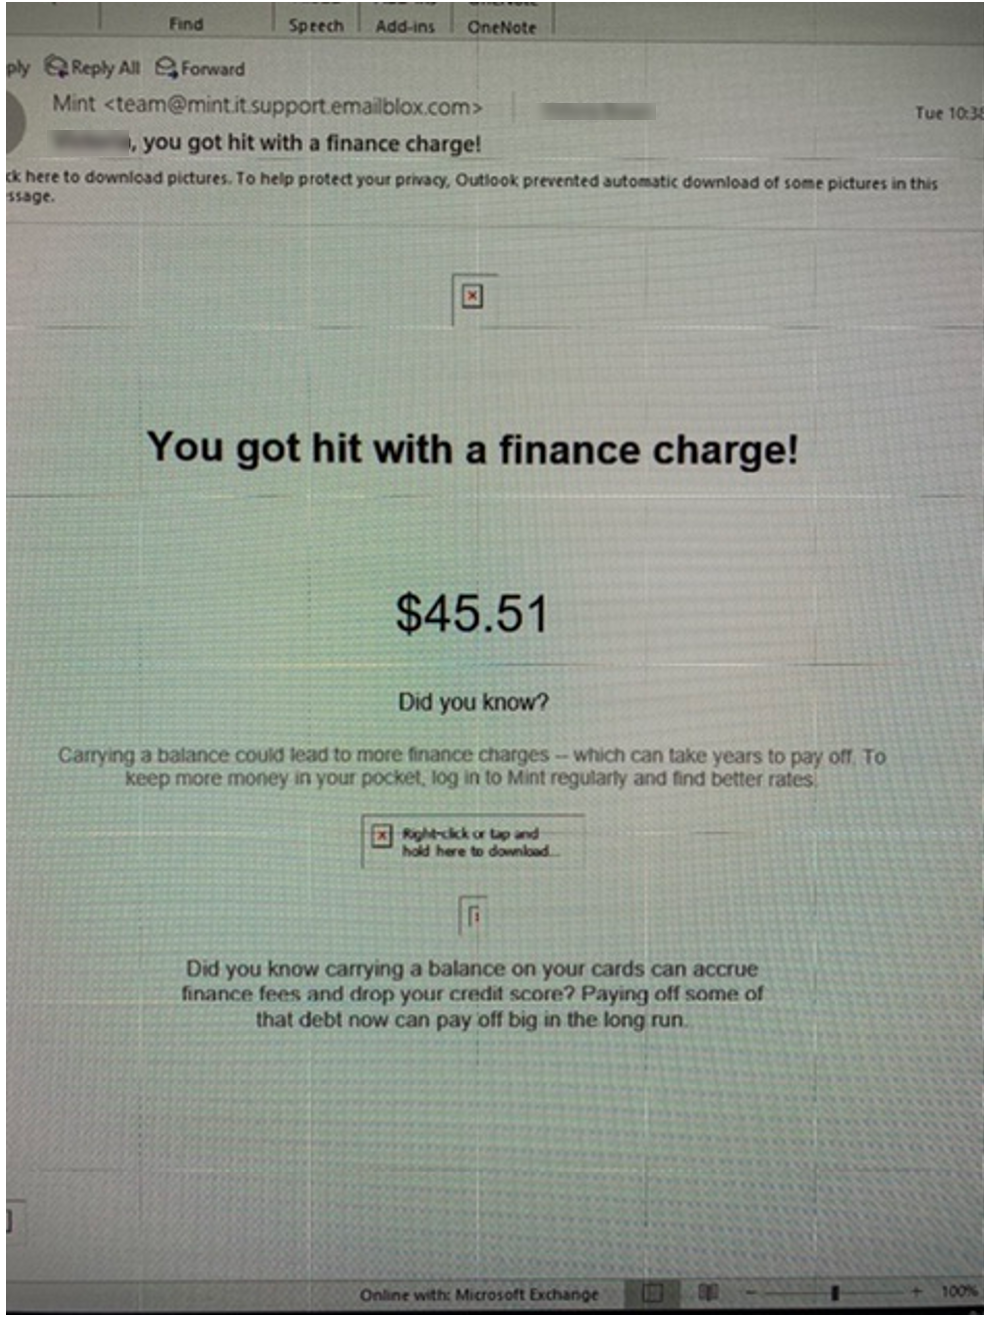 PHISHING EMAIL: XXXX you got hit with a financial charge